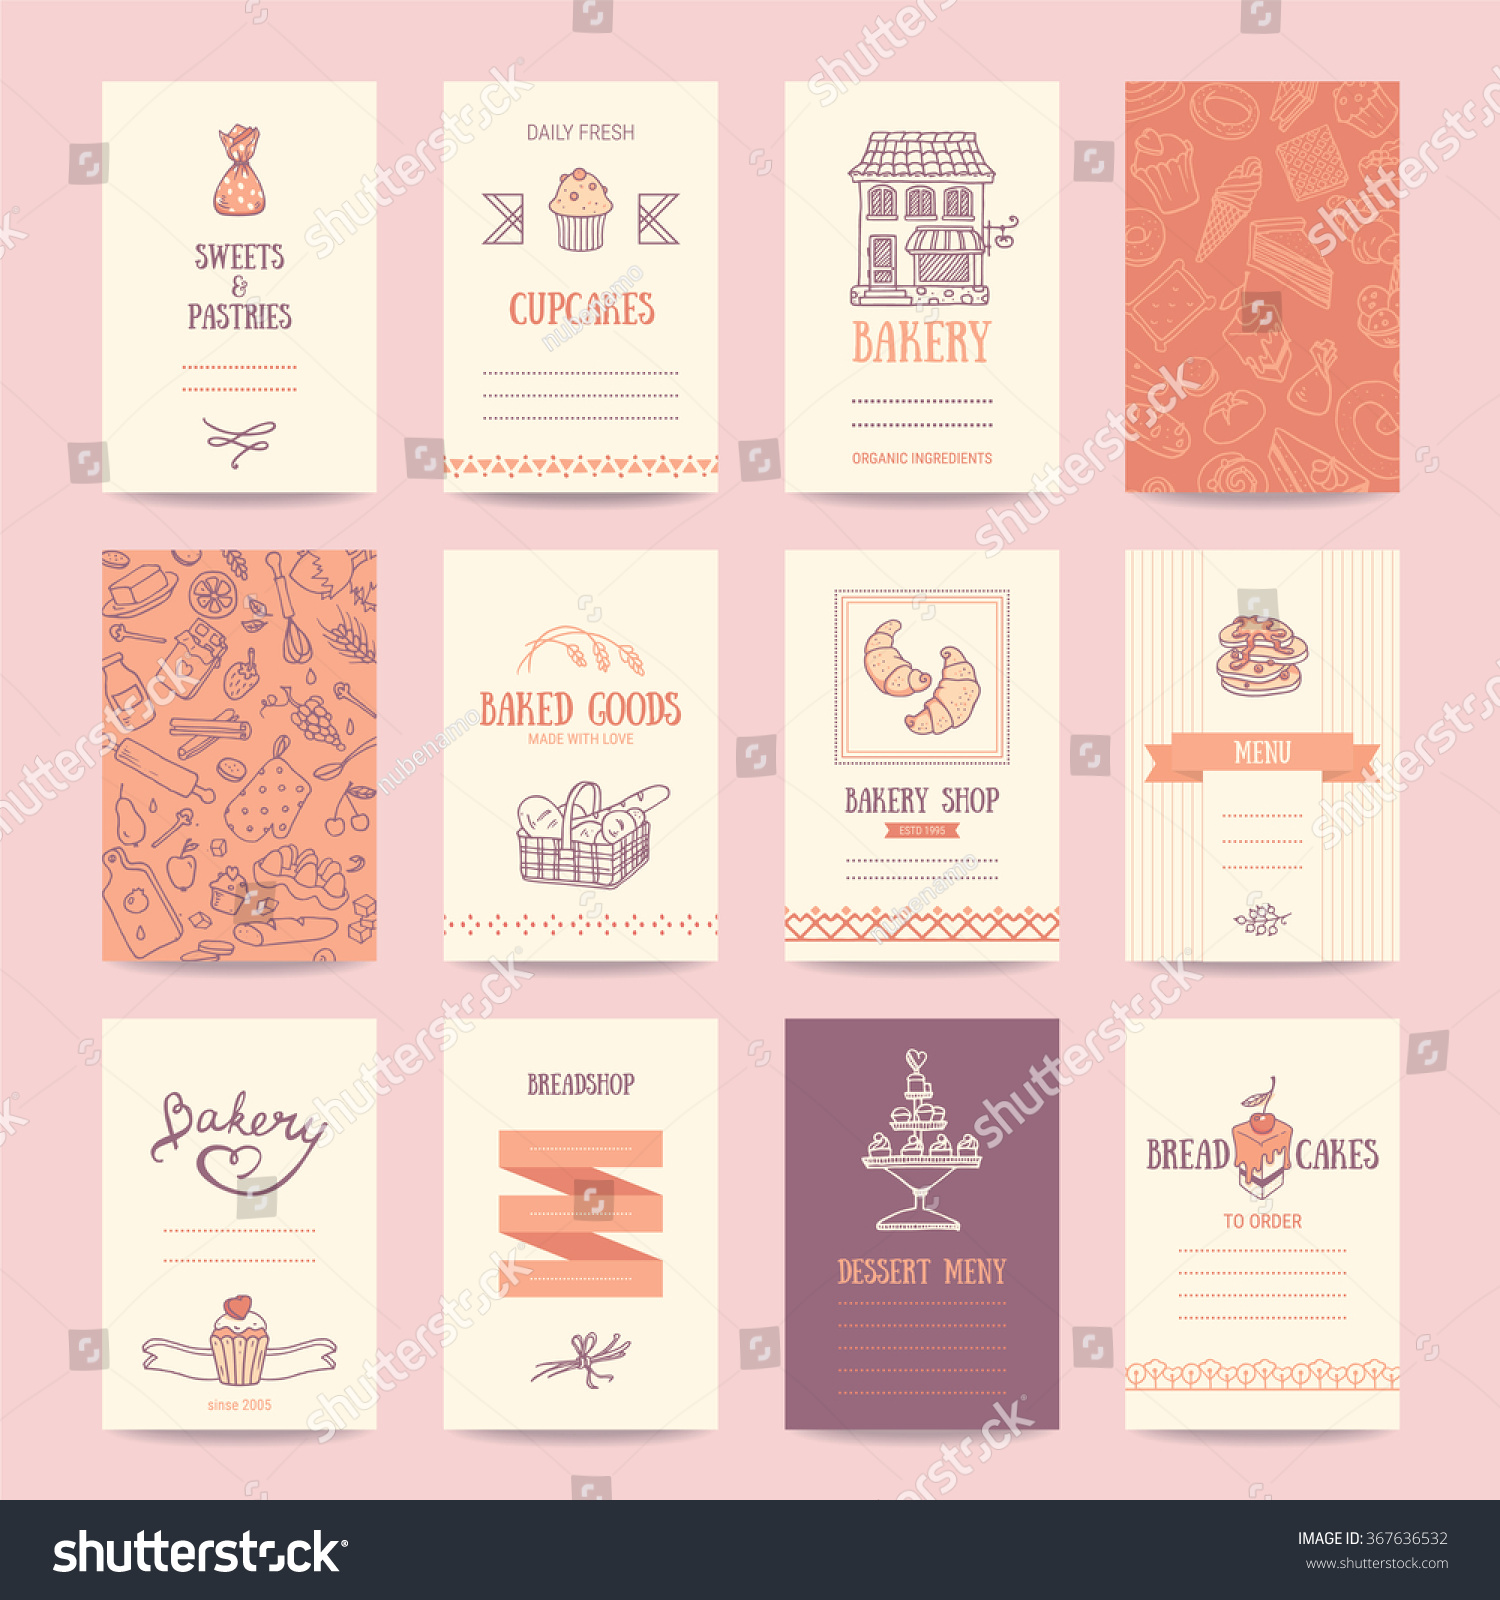 Bakery Shop Business Cards Cafe Menu Stock Vector